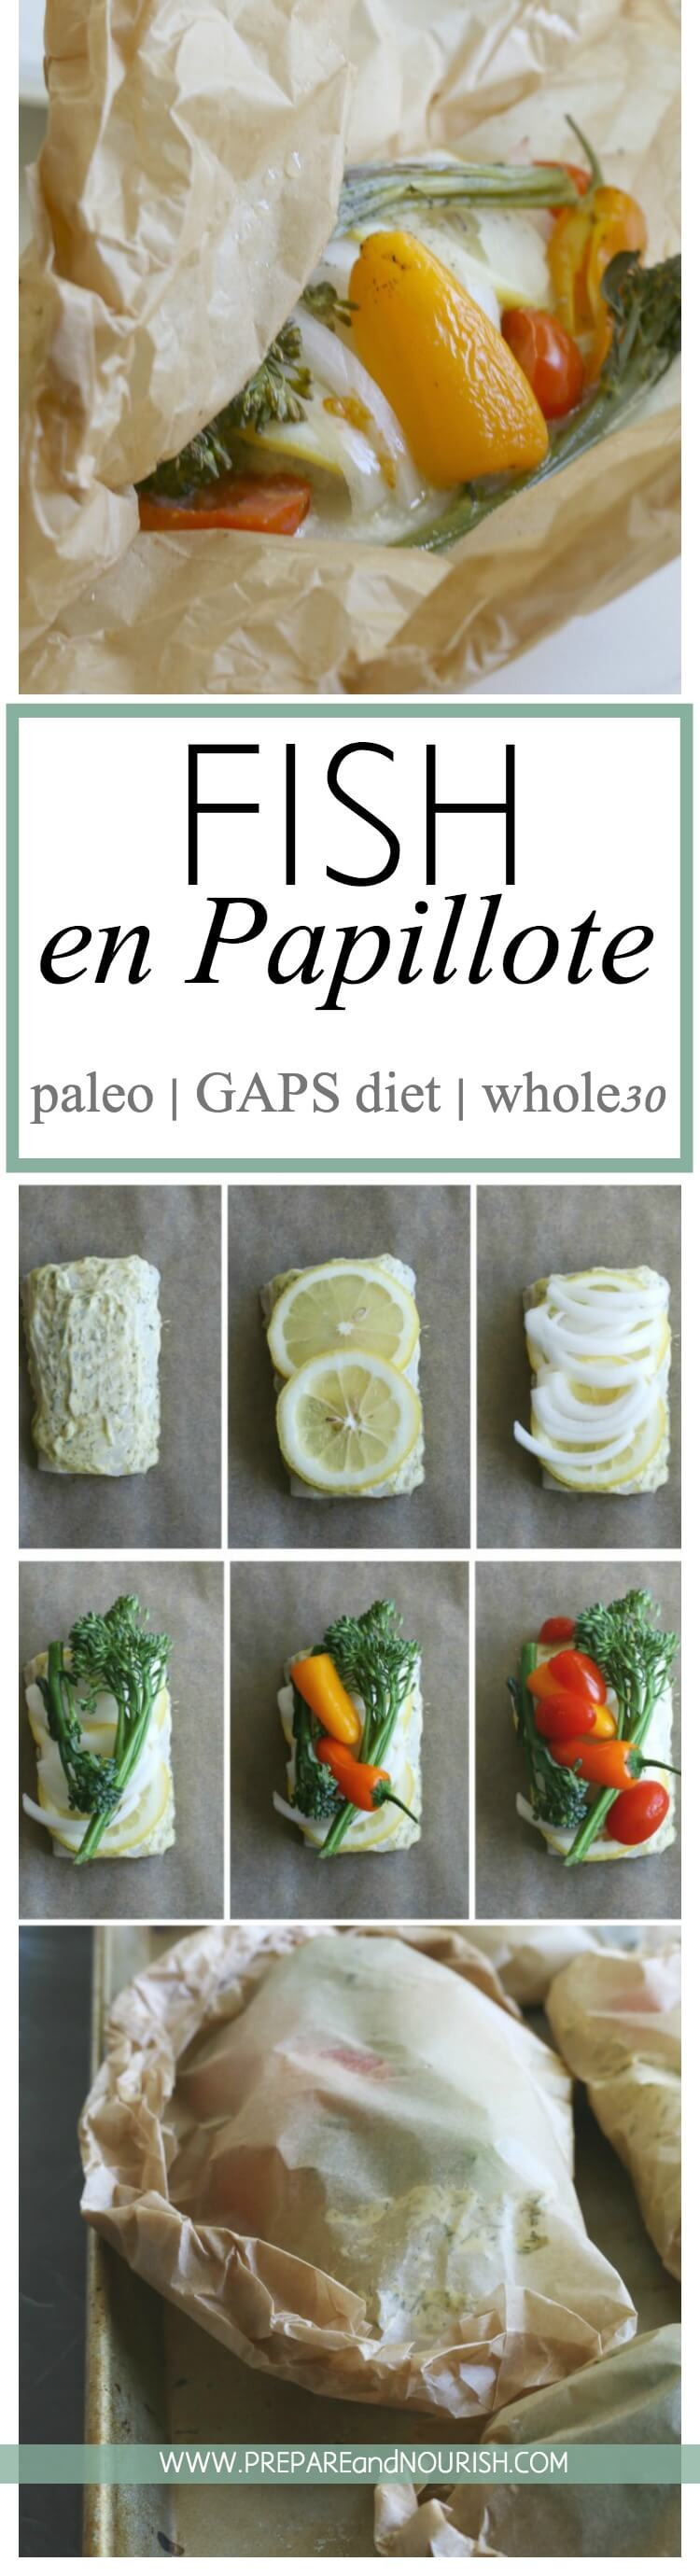 Fish en Papillote is an elegant yet simple dish where fish and veggies are wrapped in parchment paper and cooked together until delicious perfection. Paleo | GAPS | Whole30